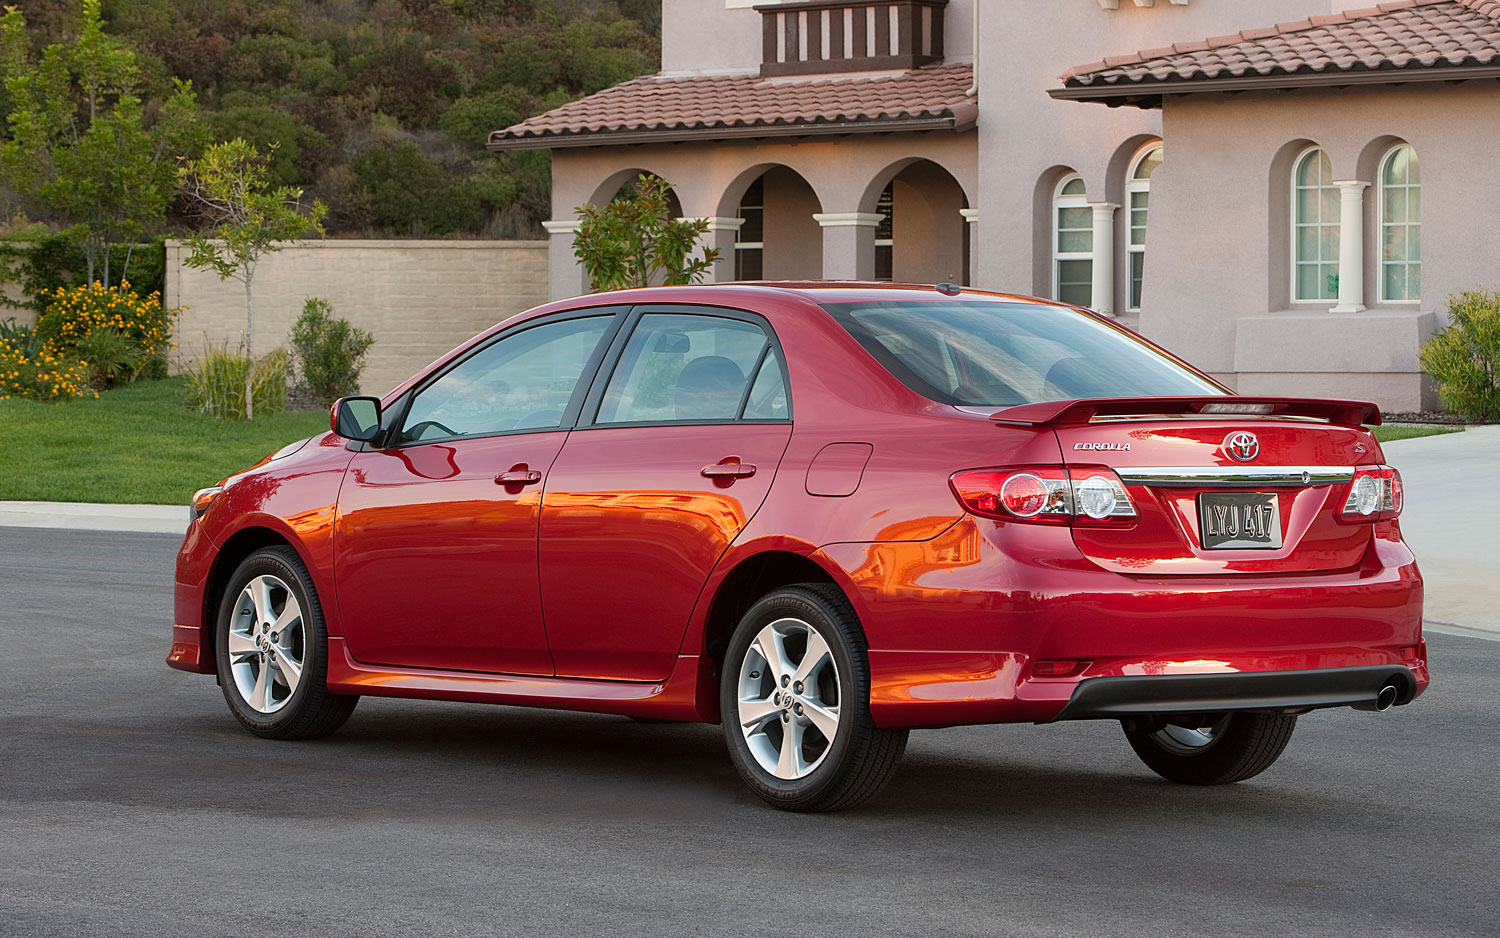 2012 Toyota Corolla Rear Three Quarter View1